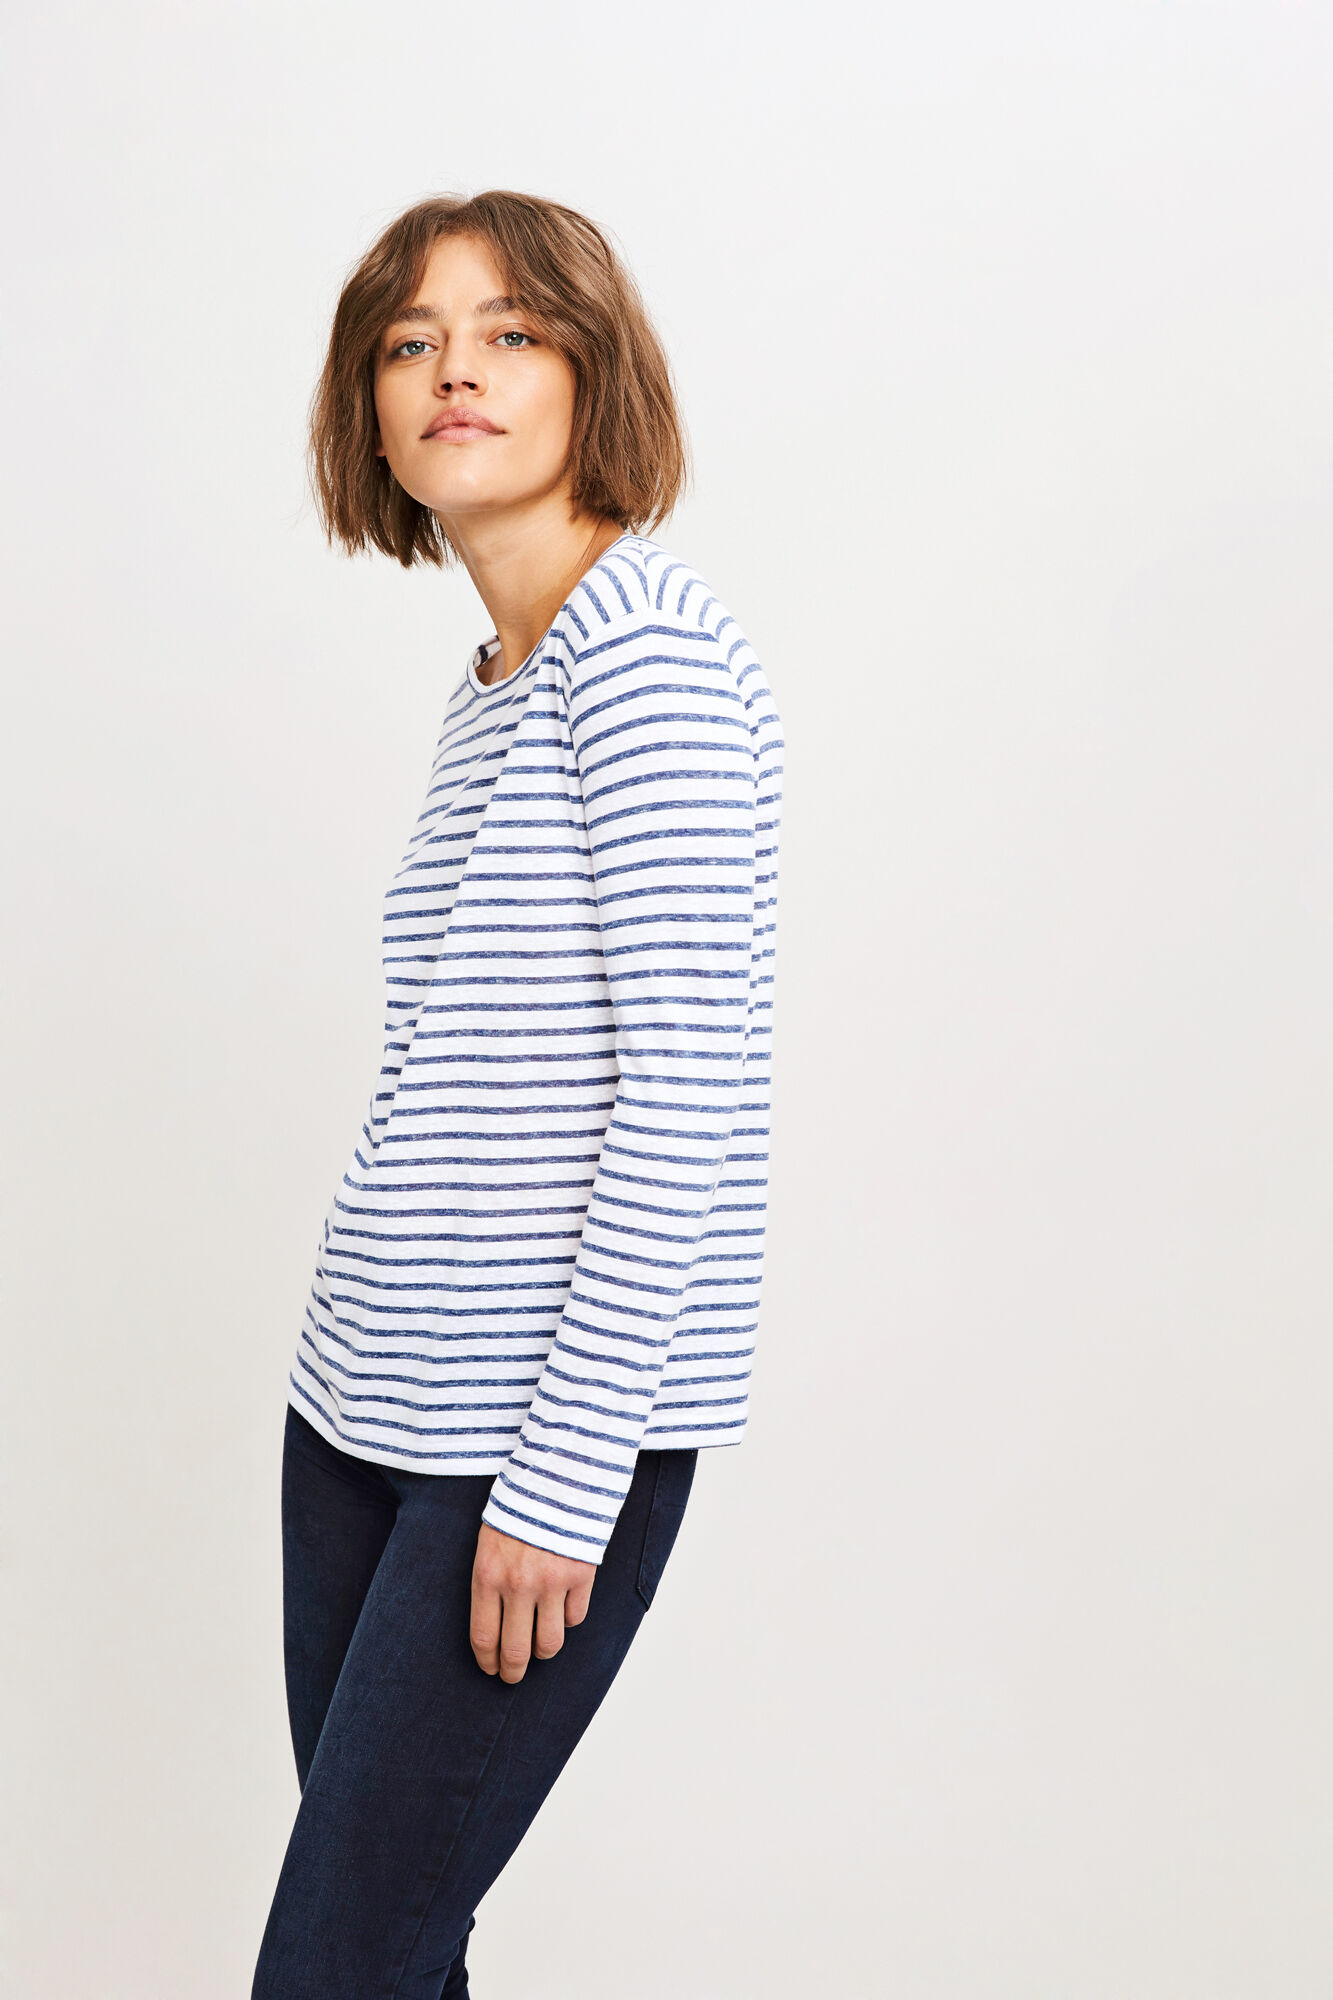 Nobel ls stripe 3173, 3173 BLUE STRIPE